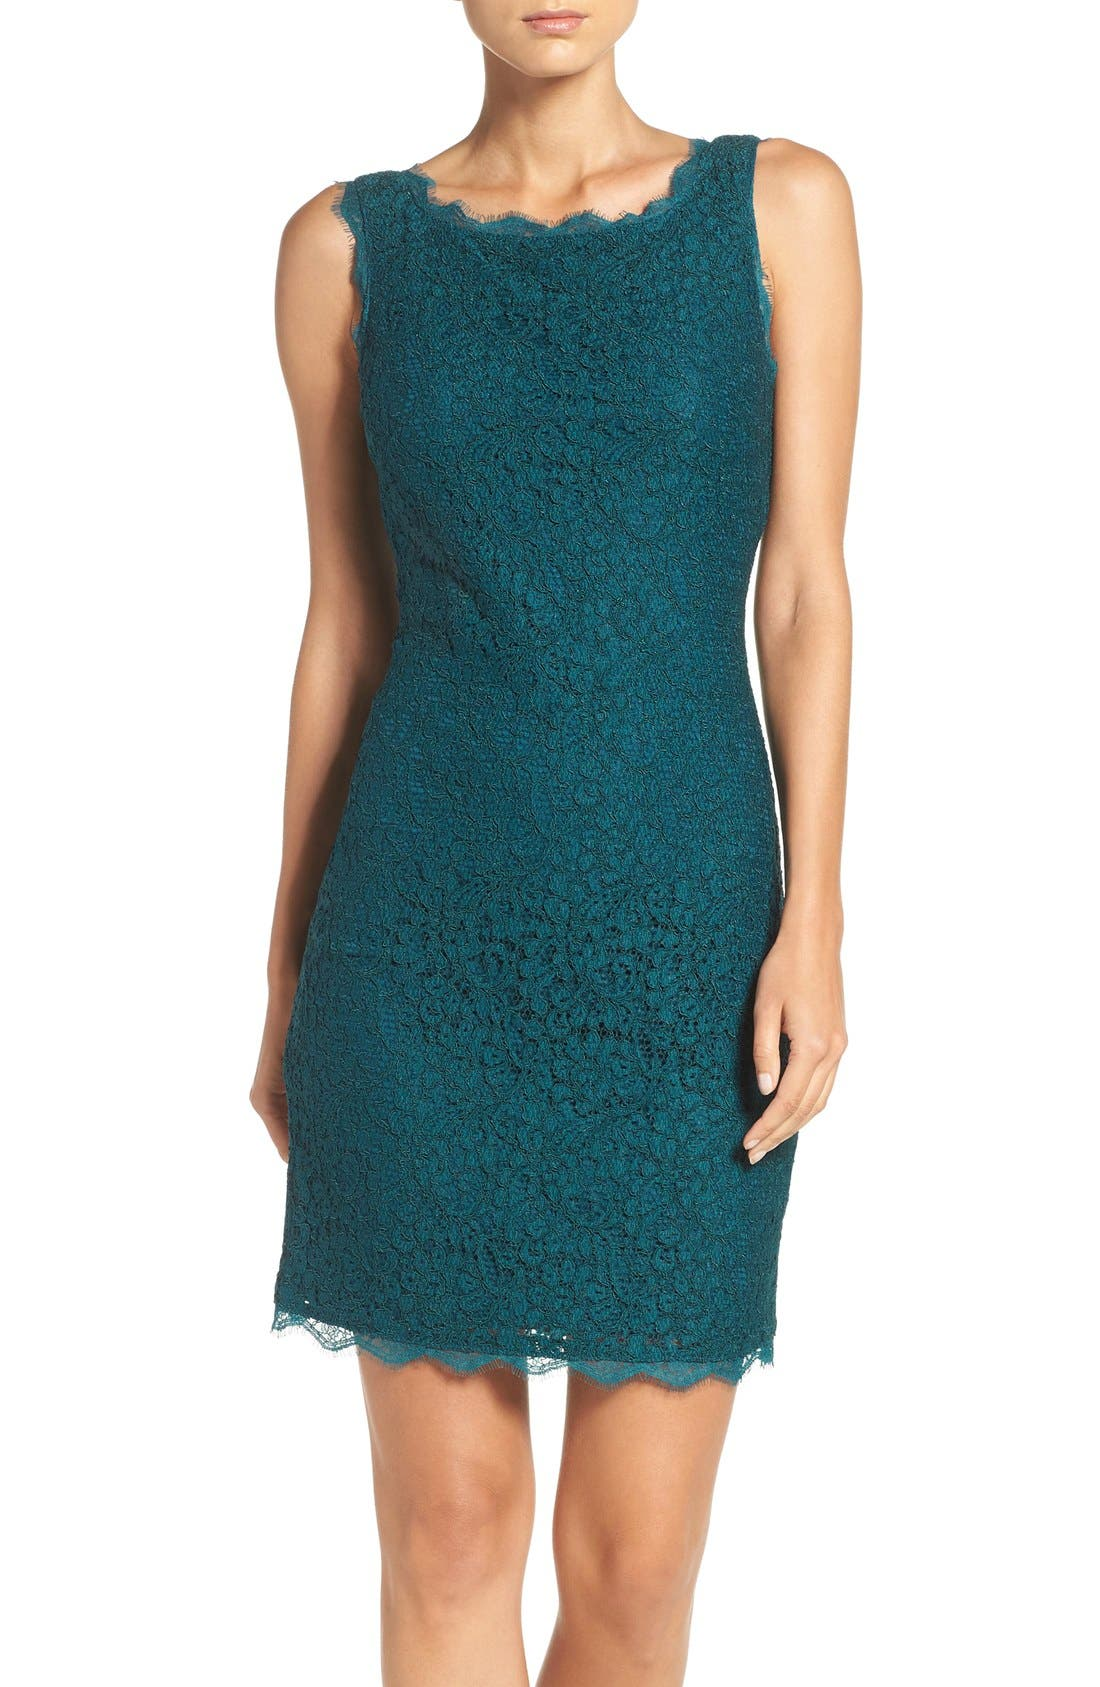 Main Image - Adrianna Papell Boatneck Lace Sheath Dress (Regular & Petite)